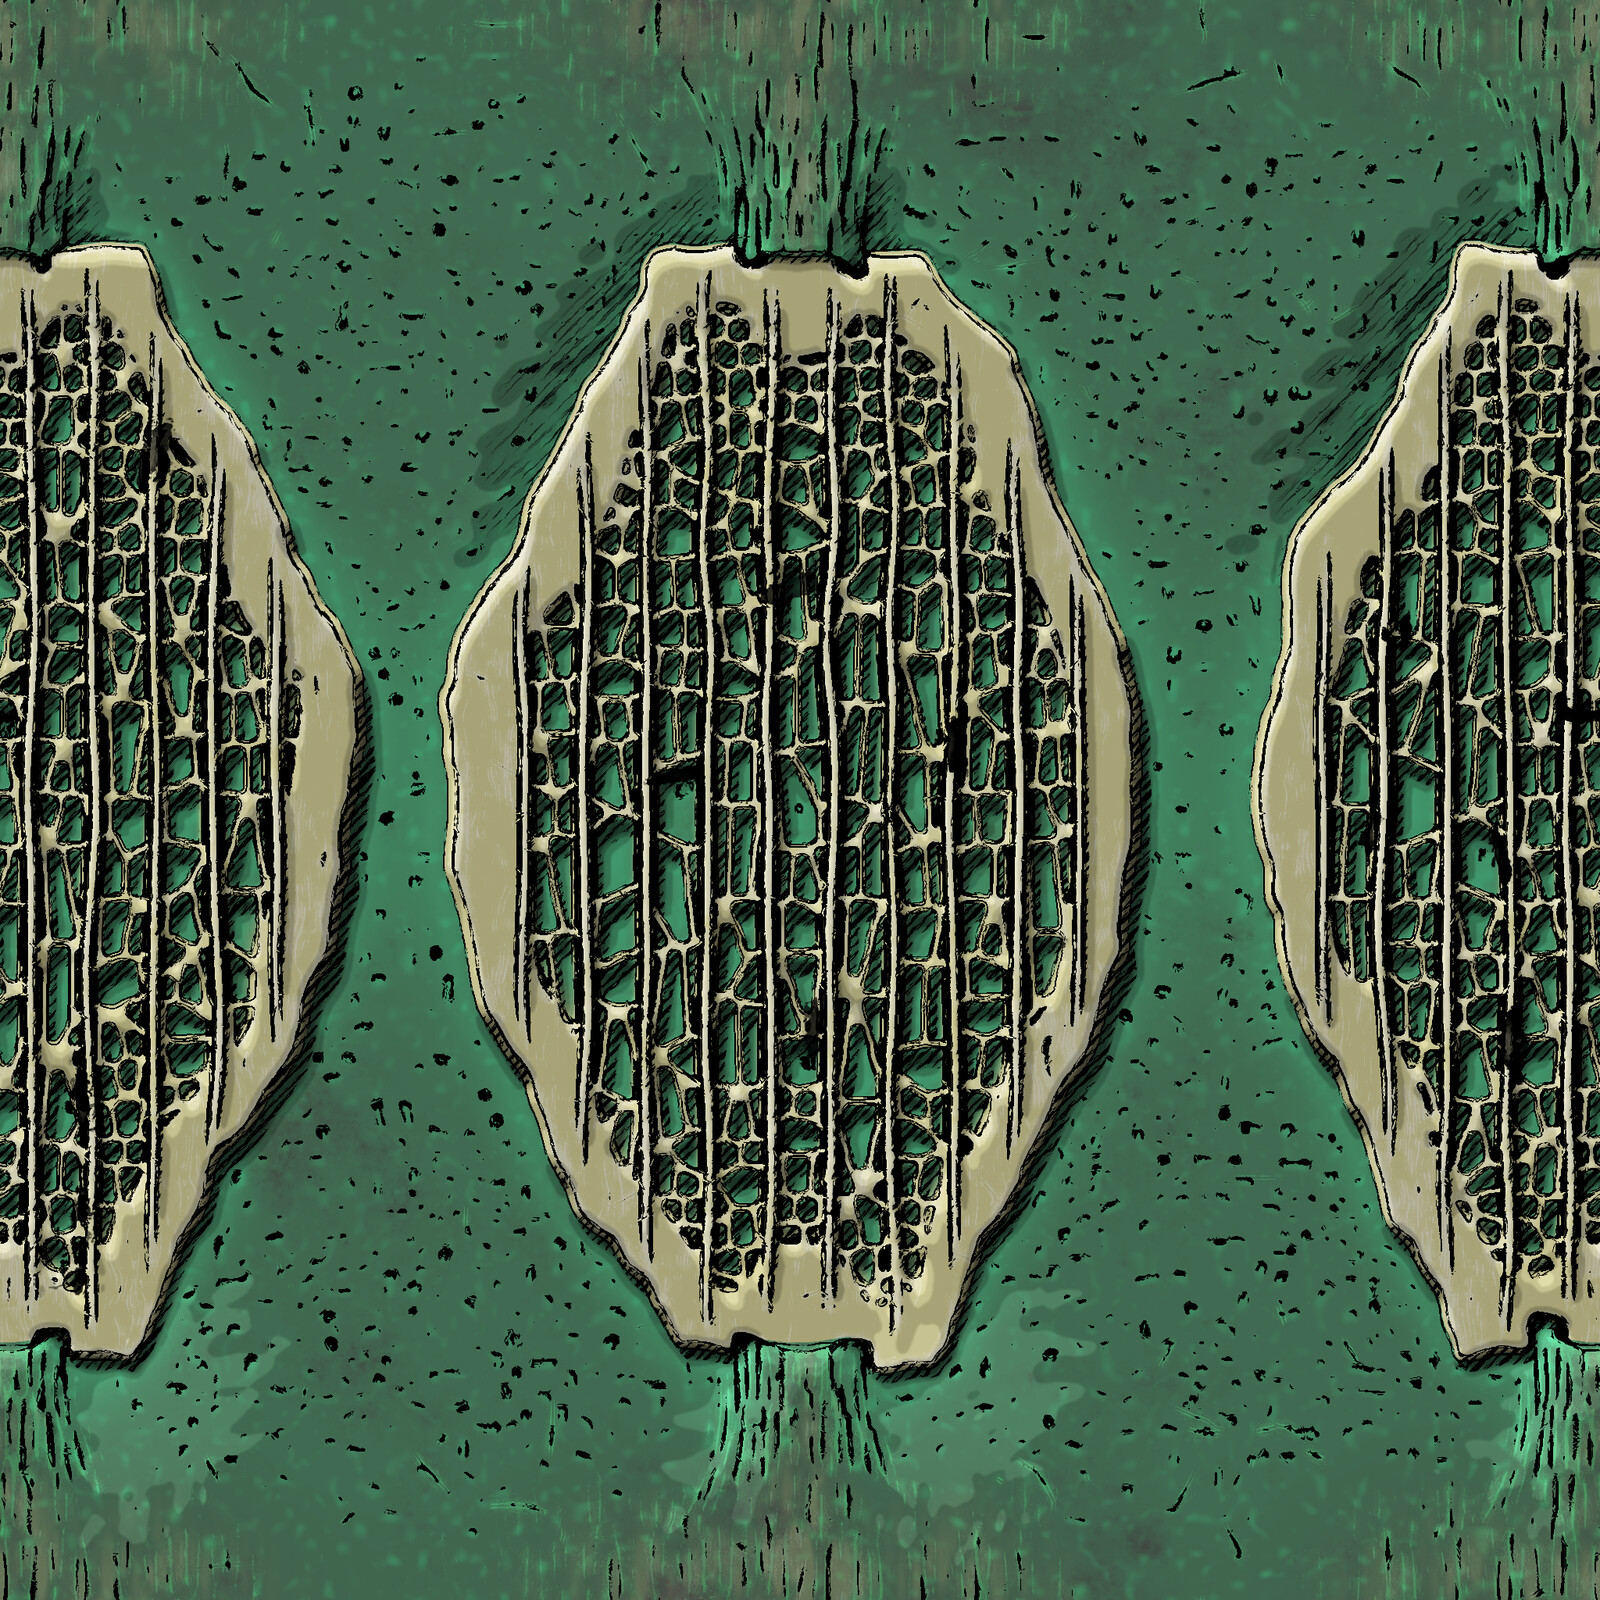 A cellular substance that I made a while back with the sketch effect blended in.